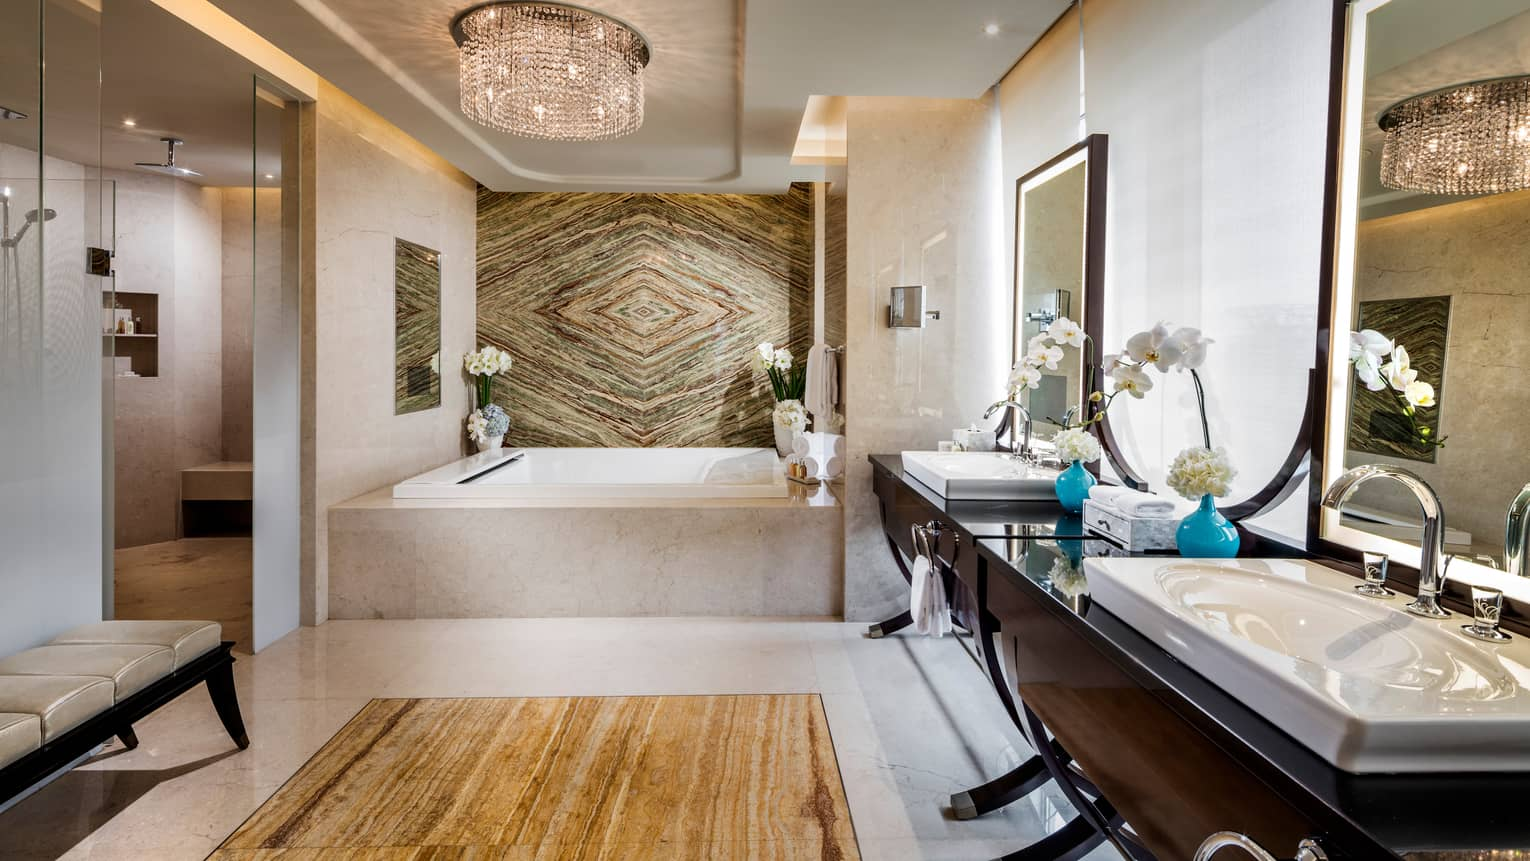 Large bathroom with square marble tub, decorative marble wall, wood vanity with double sinks